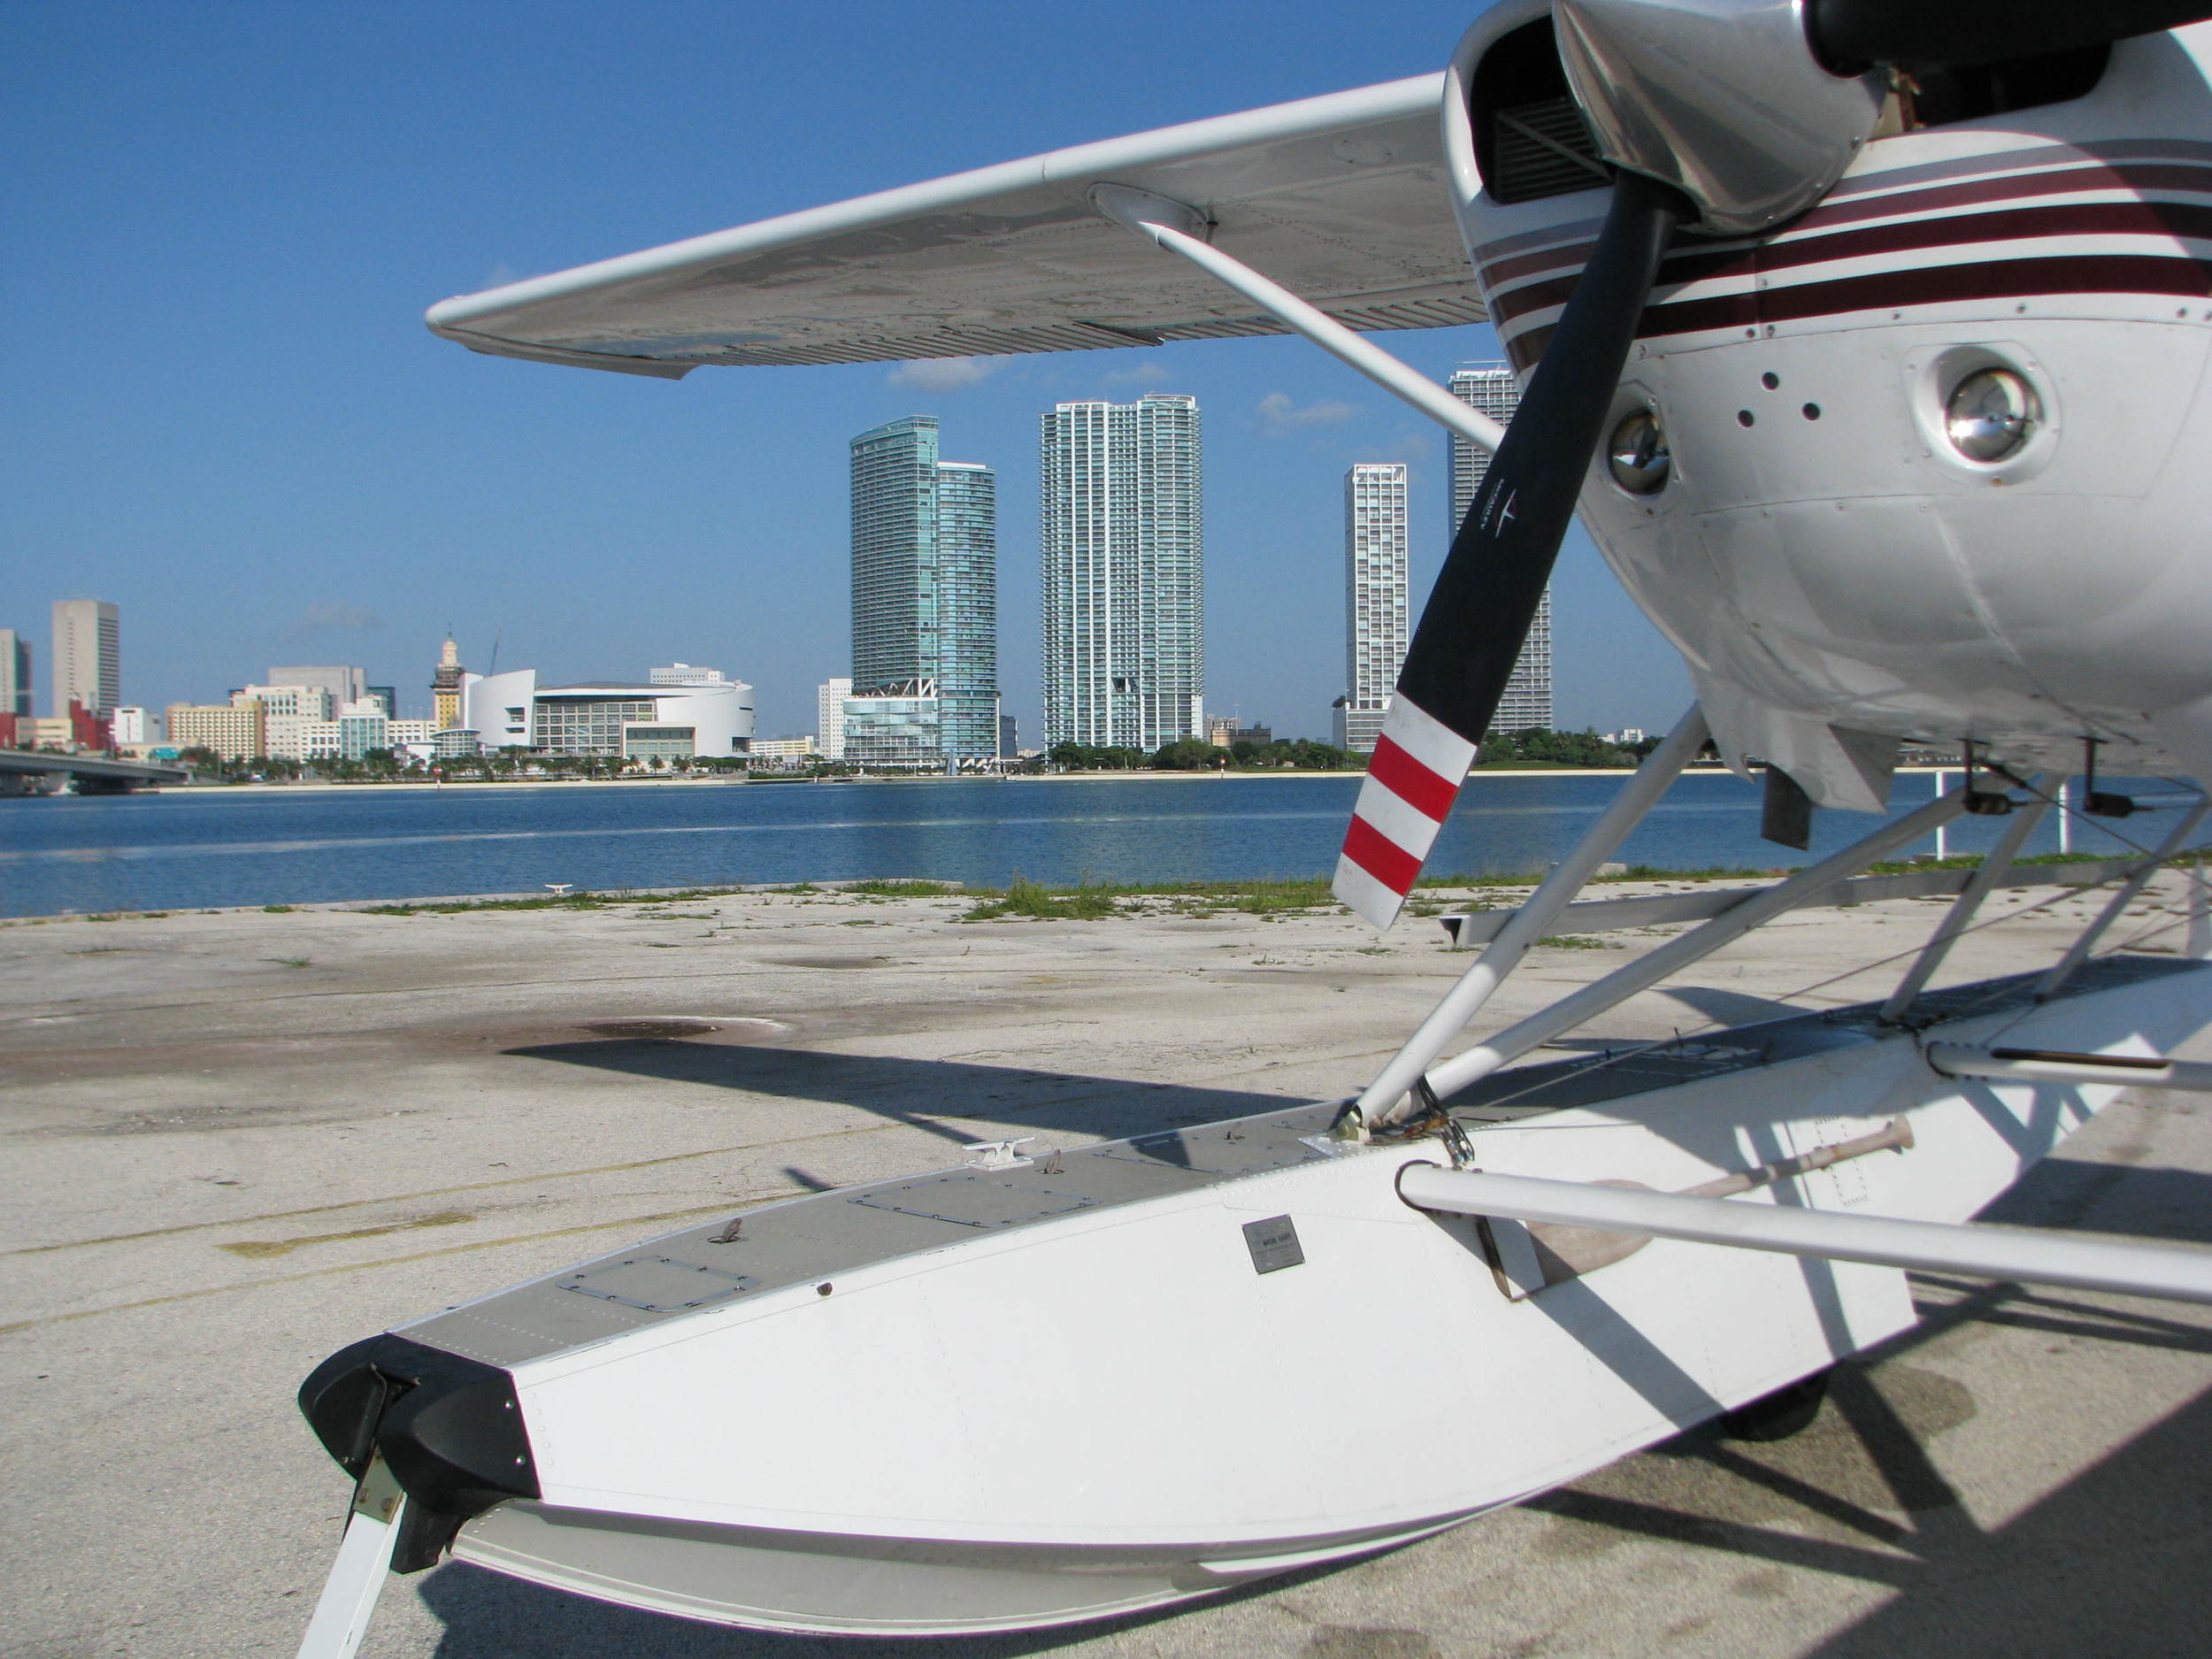 We are currently planning a sea plane adventure.